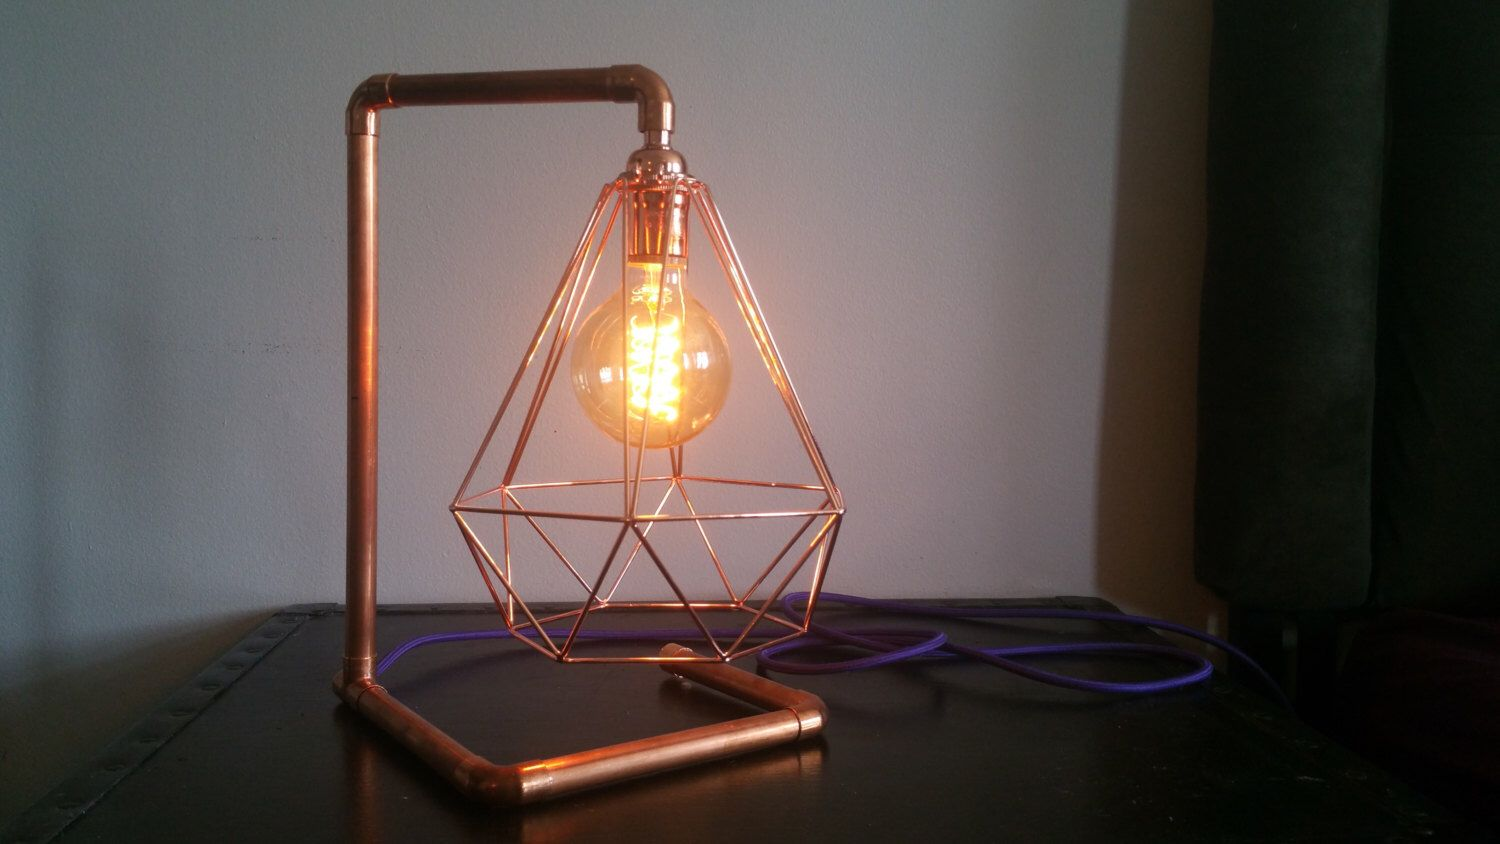 Copper Pipe Industrial Table Lamp - Vintage Lamp Antique Table Lighting Vintage Accent Light with Copper Pipe Antique Edison Bulb Table Lamp by HangoutLighting on Etsy https://www.etsy.com/listing/294015685/copper-pipe-industrial-table-lamp